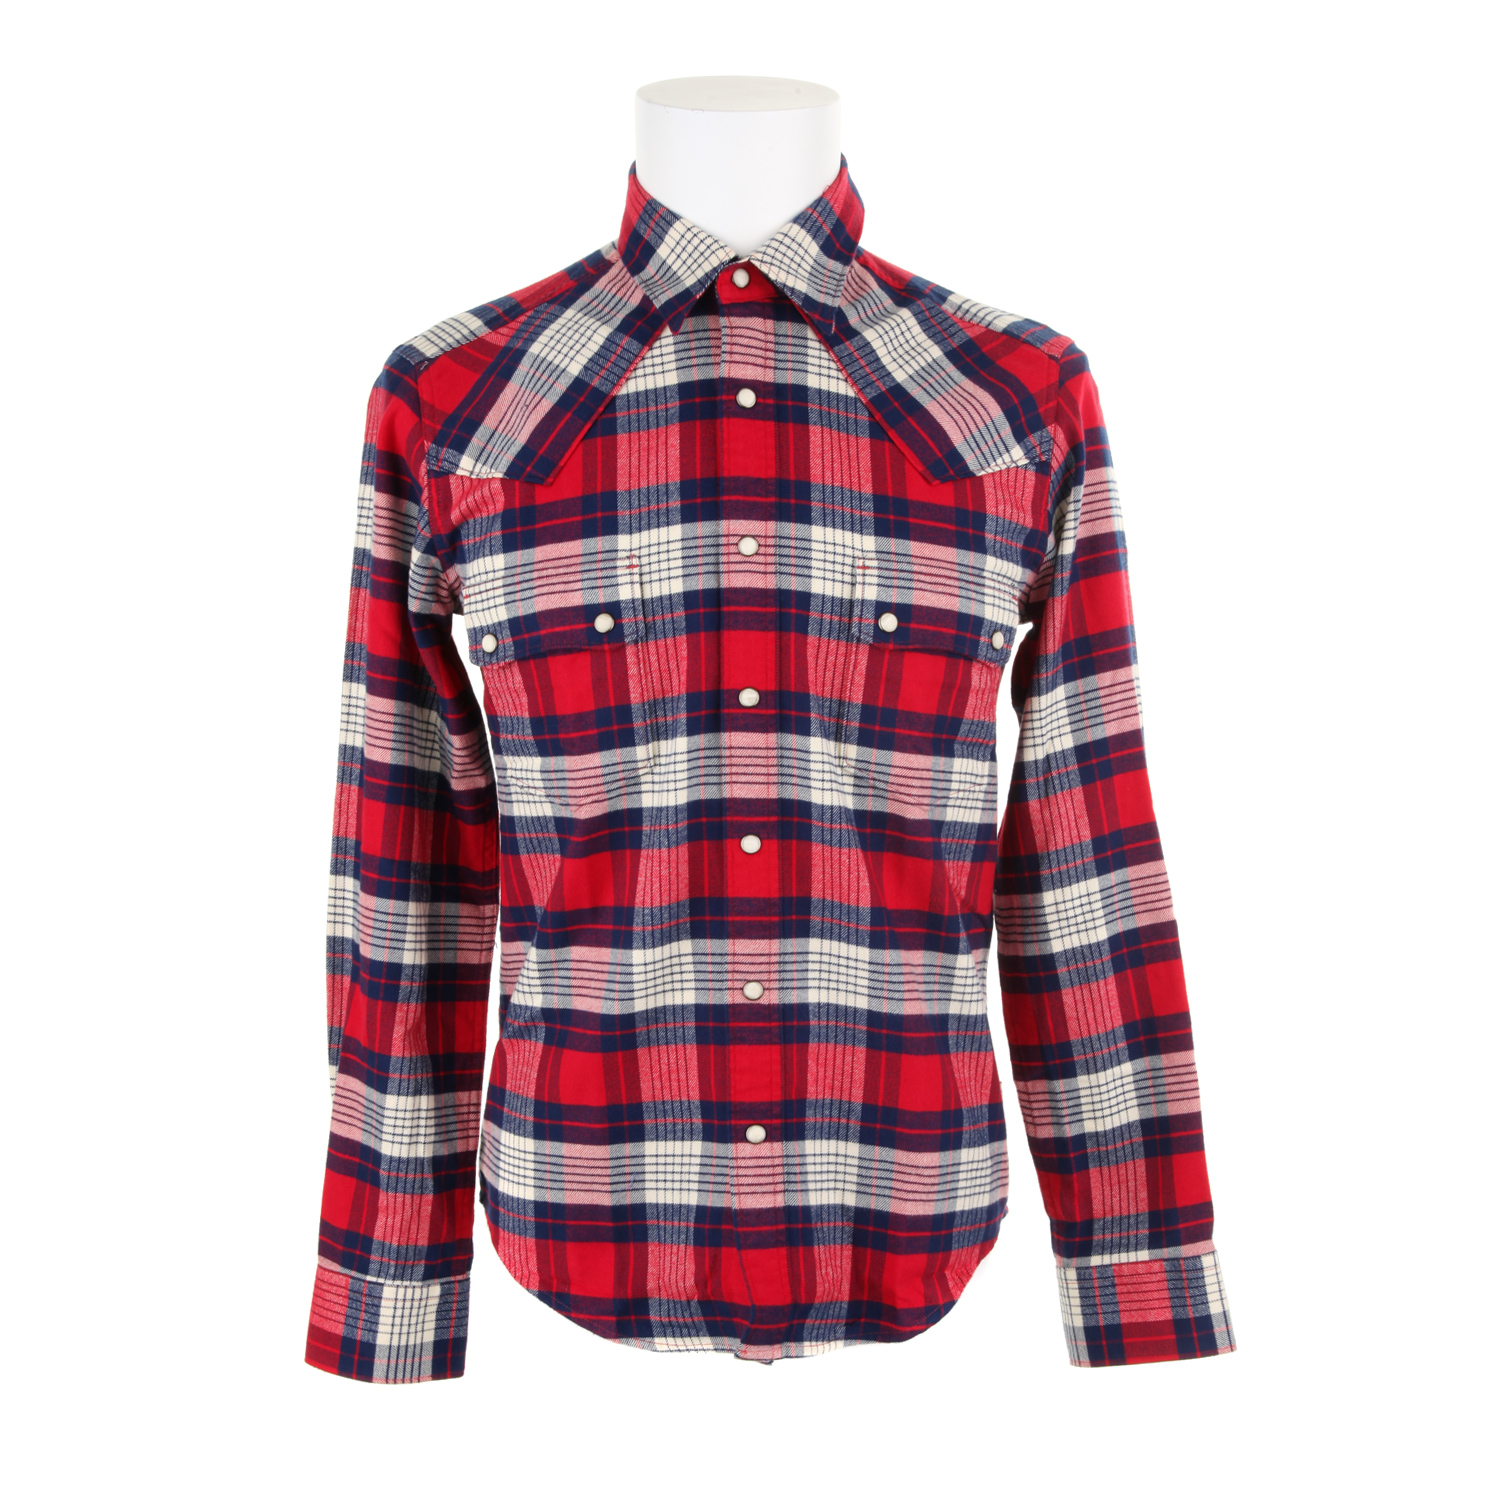 barbour frank plaid shirt in cotton flanel in red for men lyst. Black Bedroom Furniture Sets. Home Design Ideas